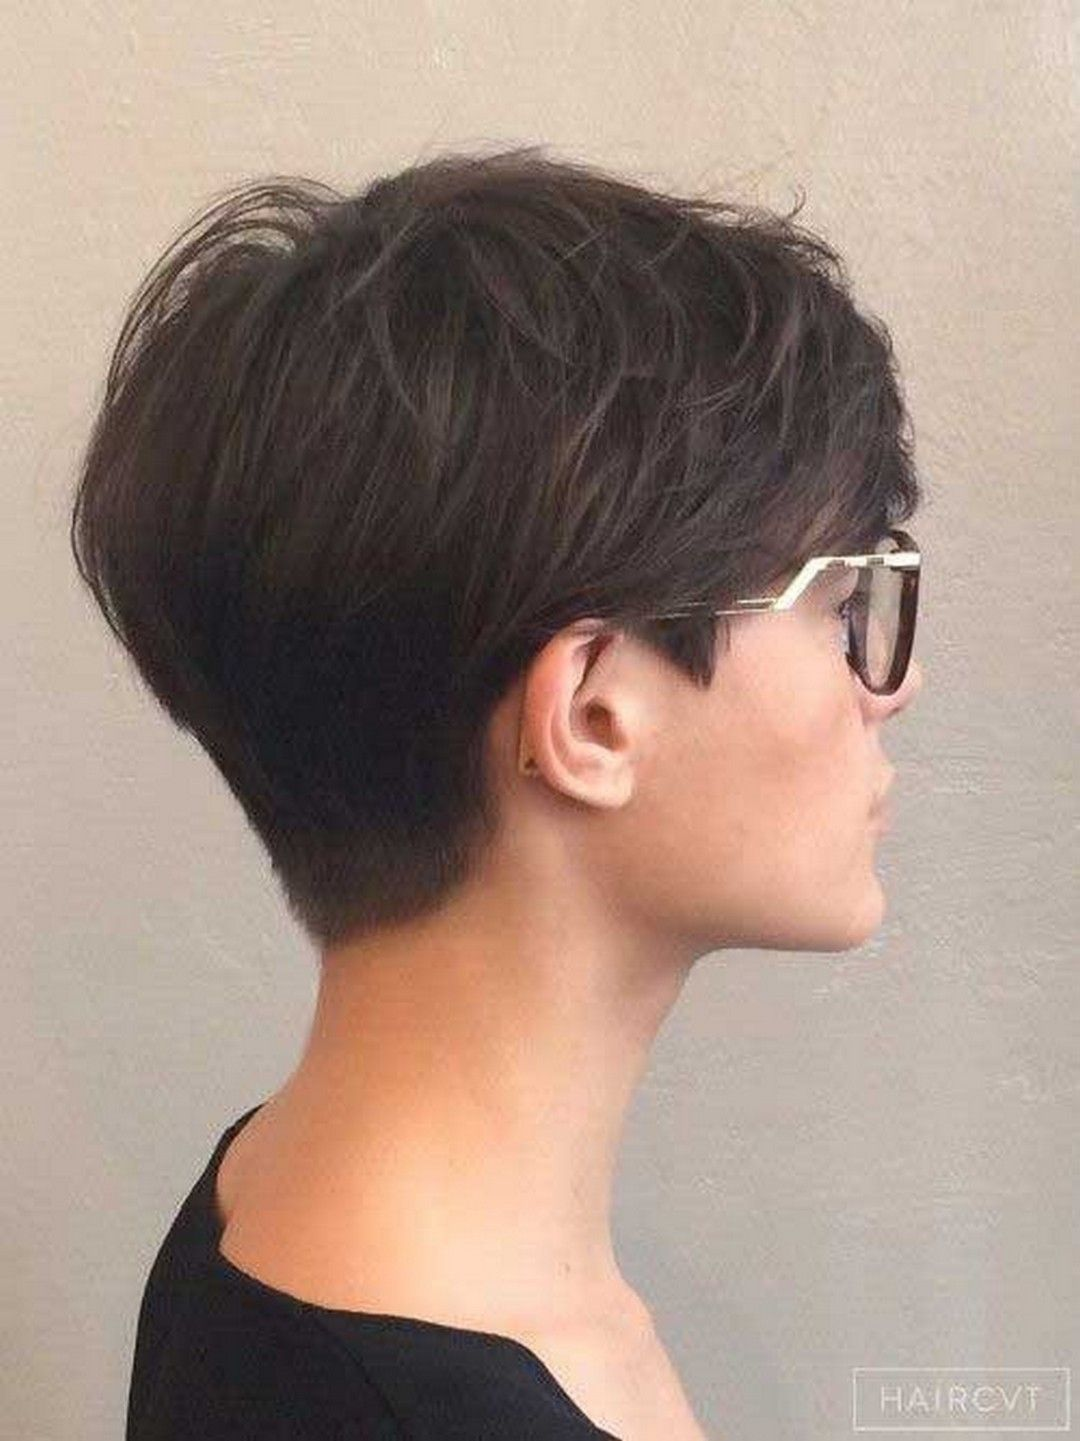 20 Chic Wedge Hairstyle Designs You Must Try